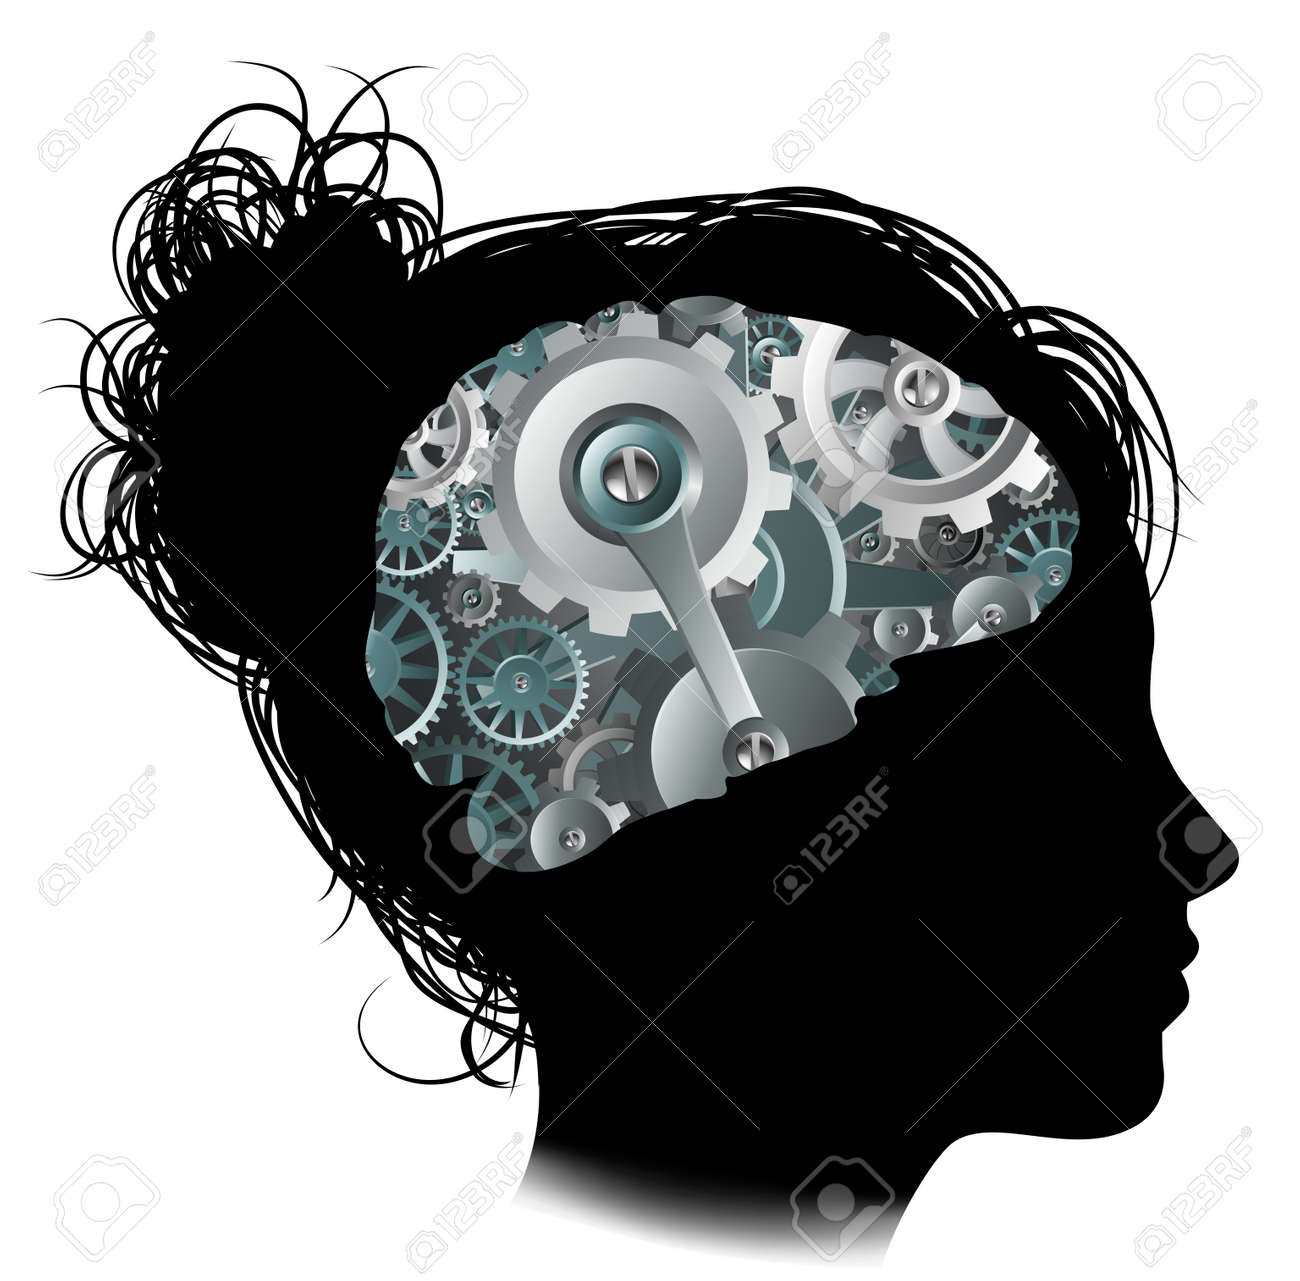 Silhouette of a woman with a brain made up of gears or cogs workings machine parts - 57835636